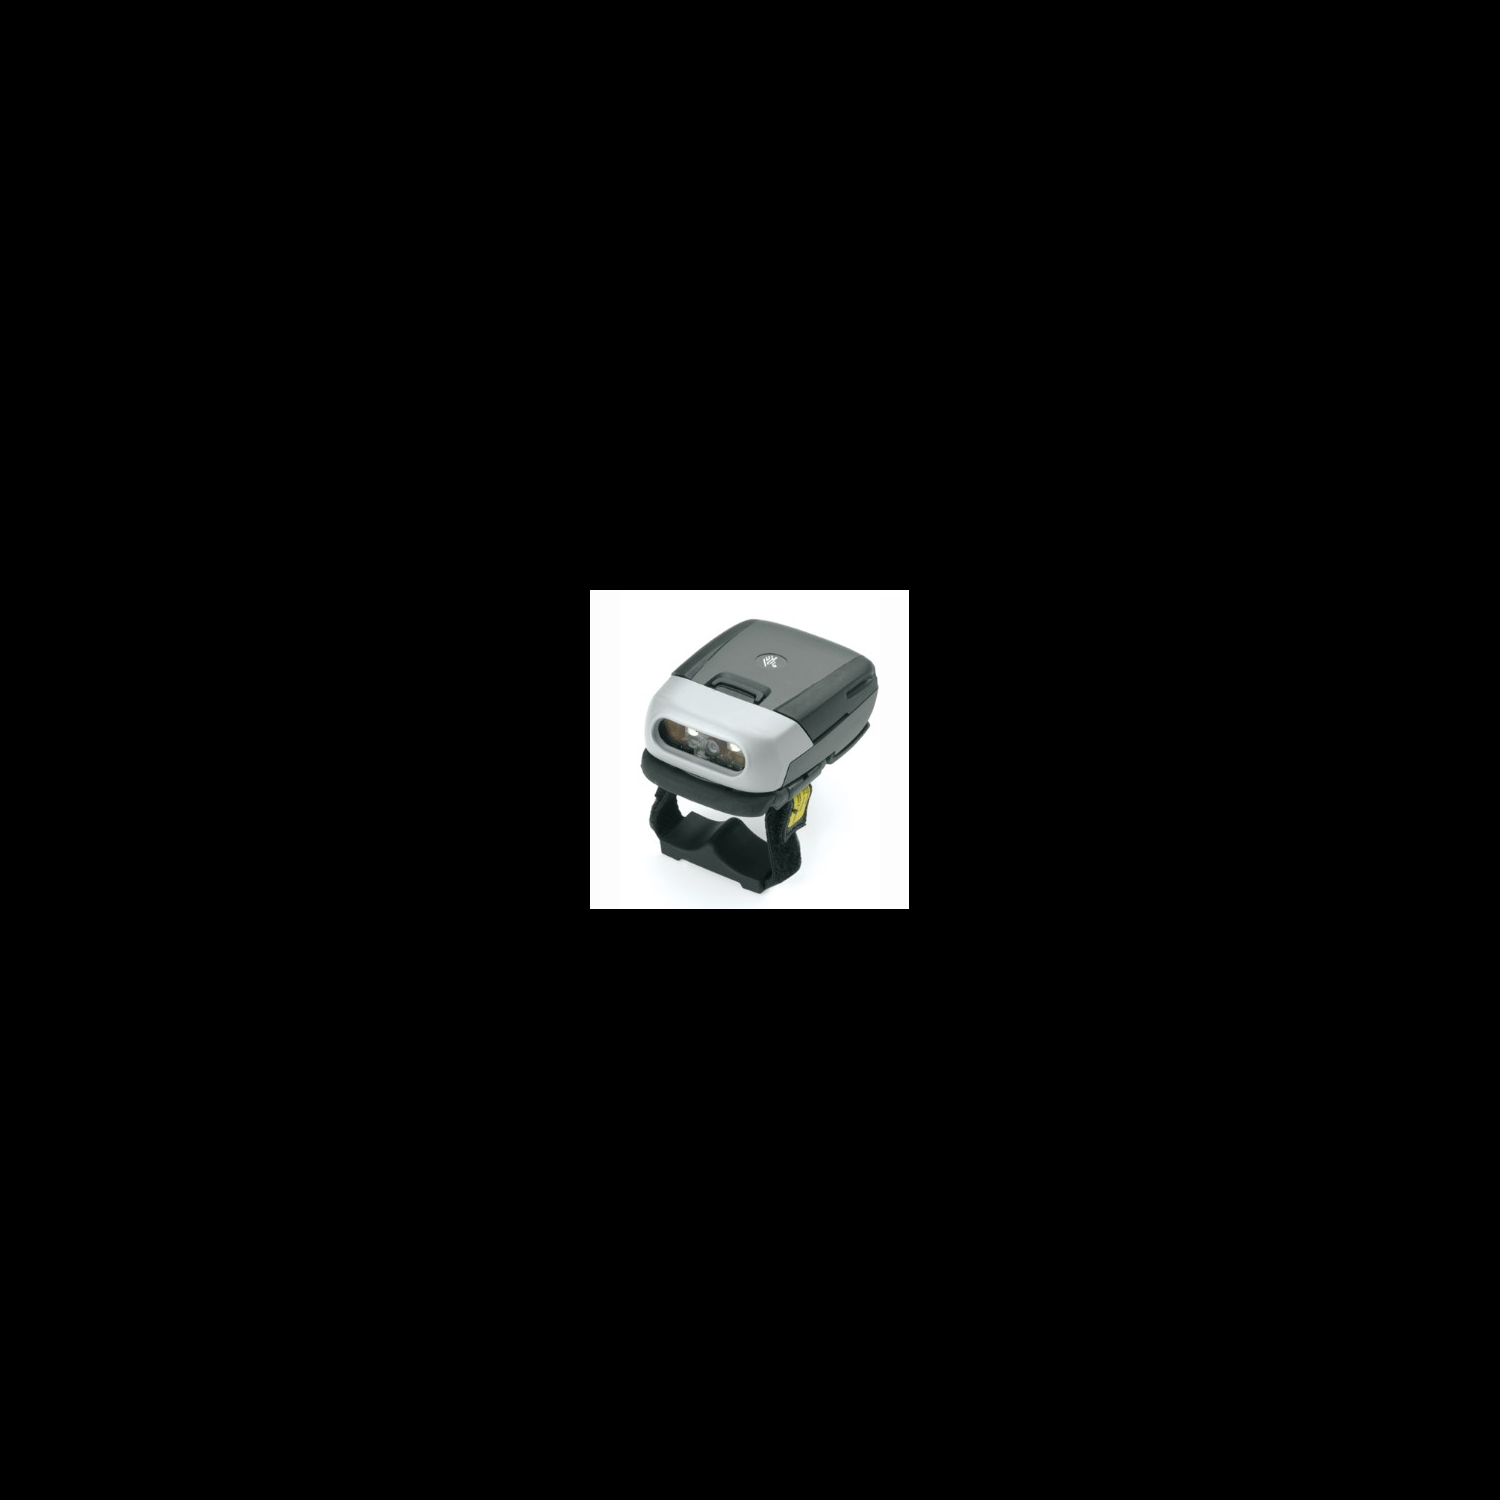 Buy Zebra RS507 Wearable Barcode Scanner - Wireless Connectivity   RTG